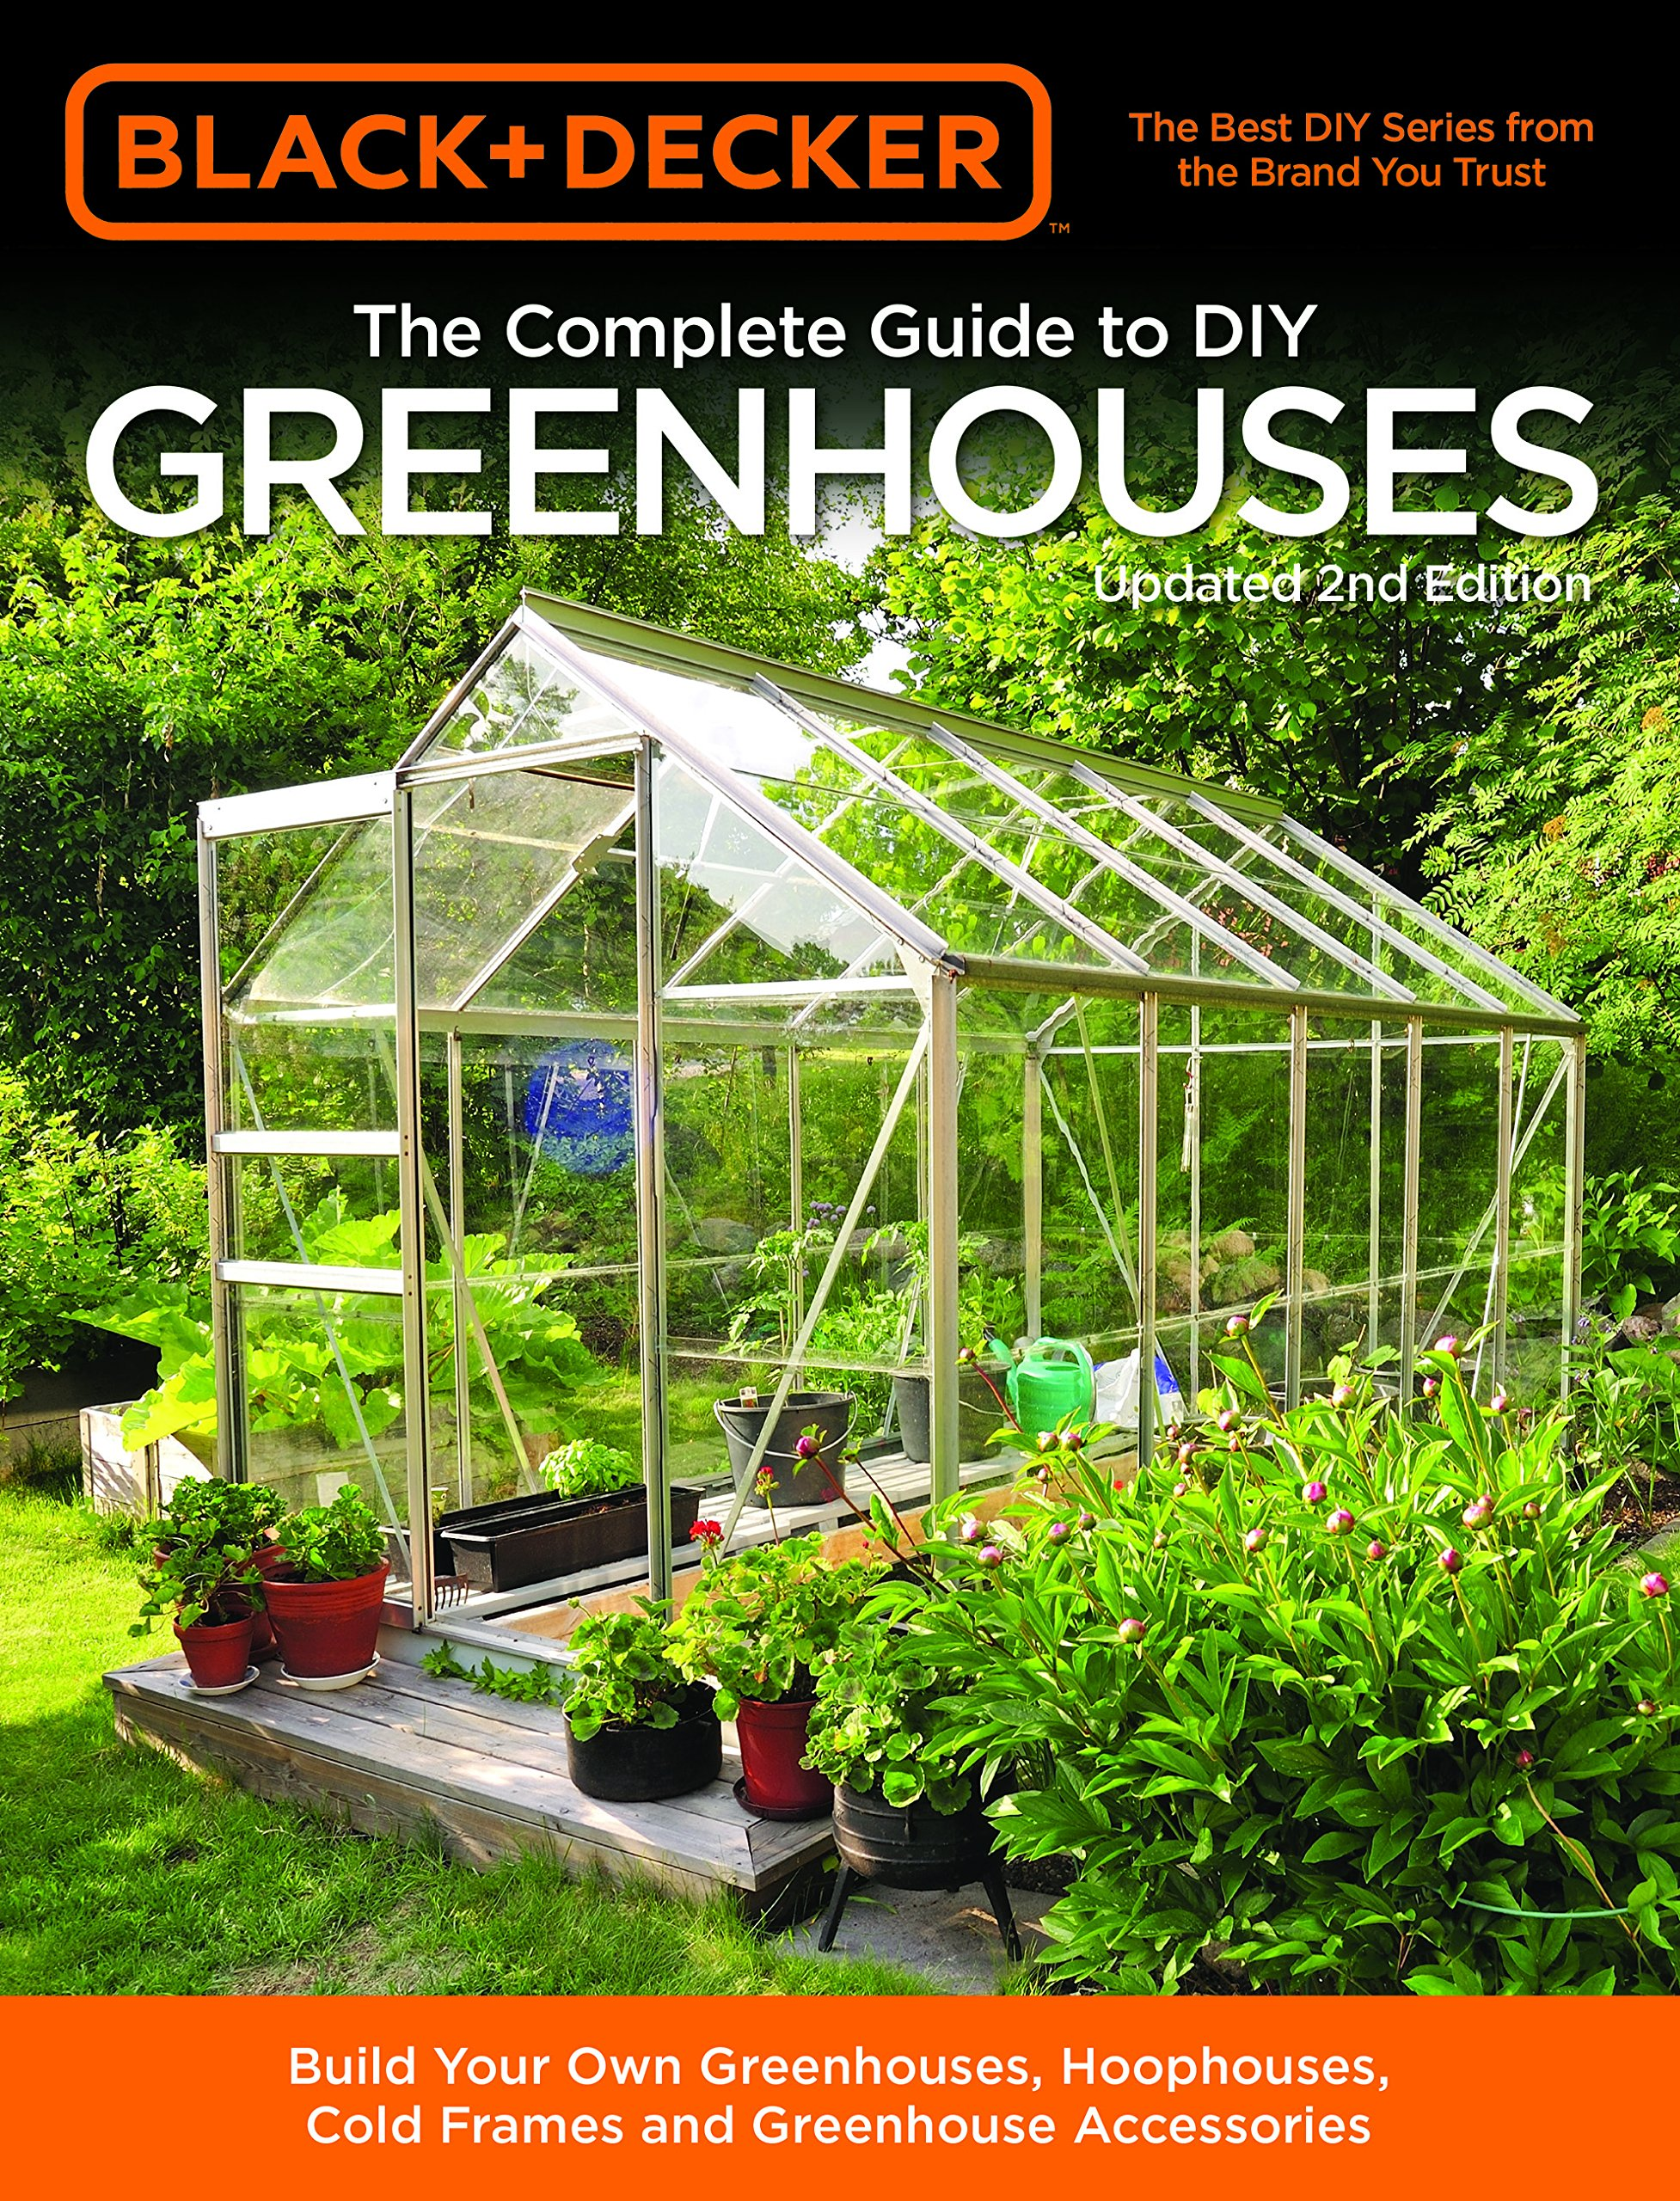 Greenhouses do it yourself for seedlings. Greenhouse for cucumbers with their own hands 27